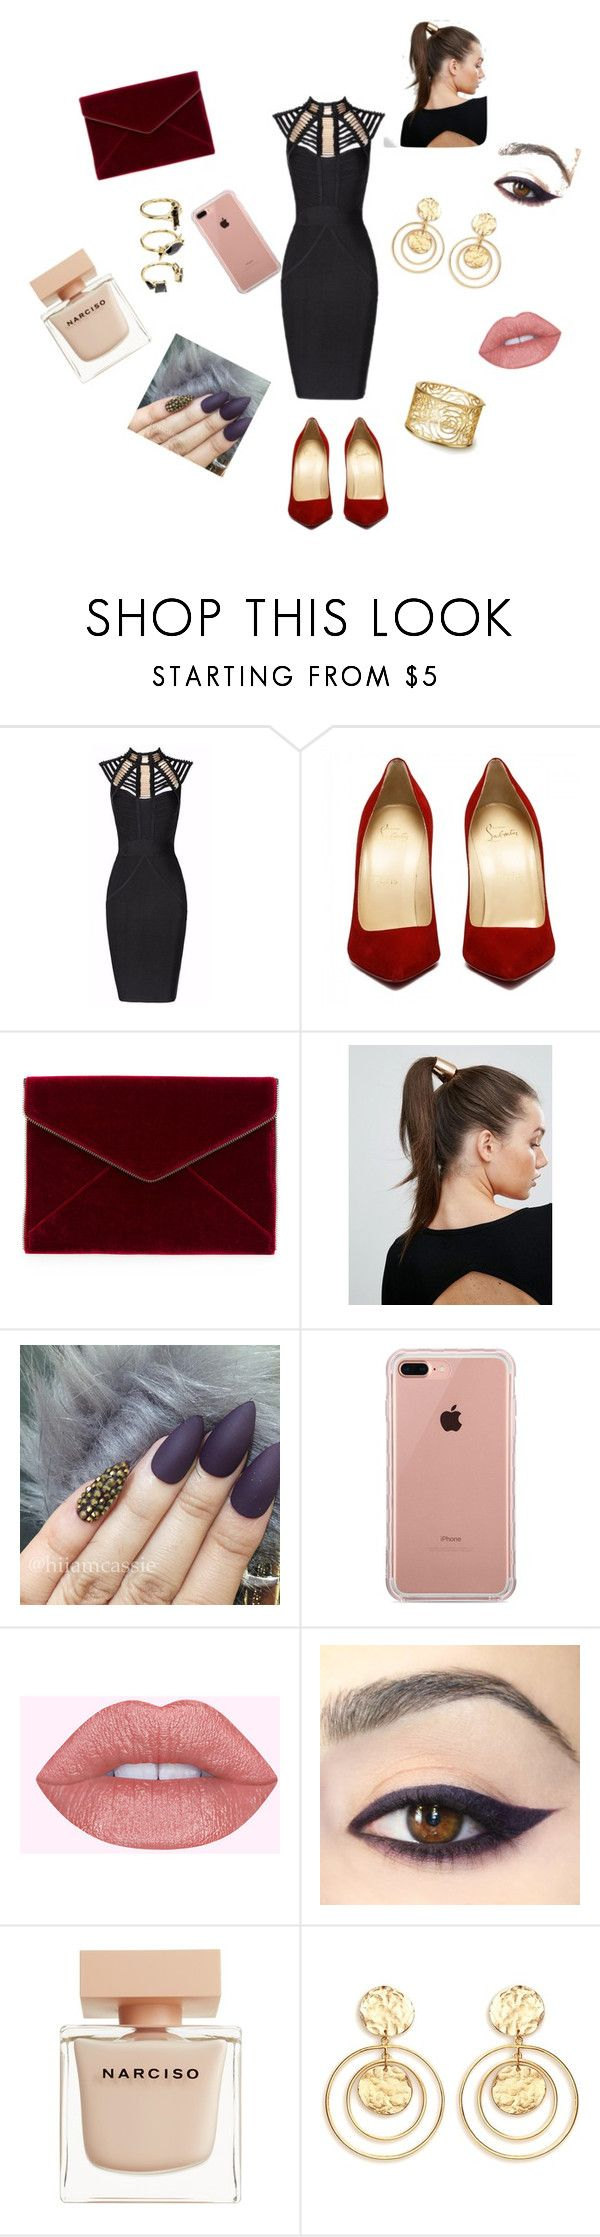 """""""Untitled #2"""" by evellyn-ferreira ❤ liked on Polyvore featuring Posh Girl, Rebecca Minkoff, Johnny Loves Rosie, Belkin, Narciso Rodriguez, Kenneth Jay Lane and Noir Jewelry"""